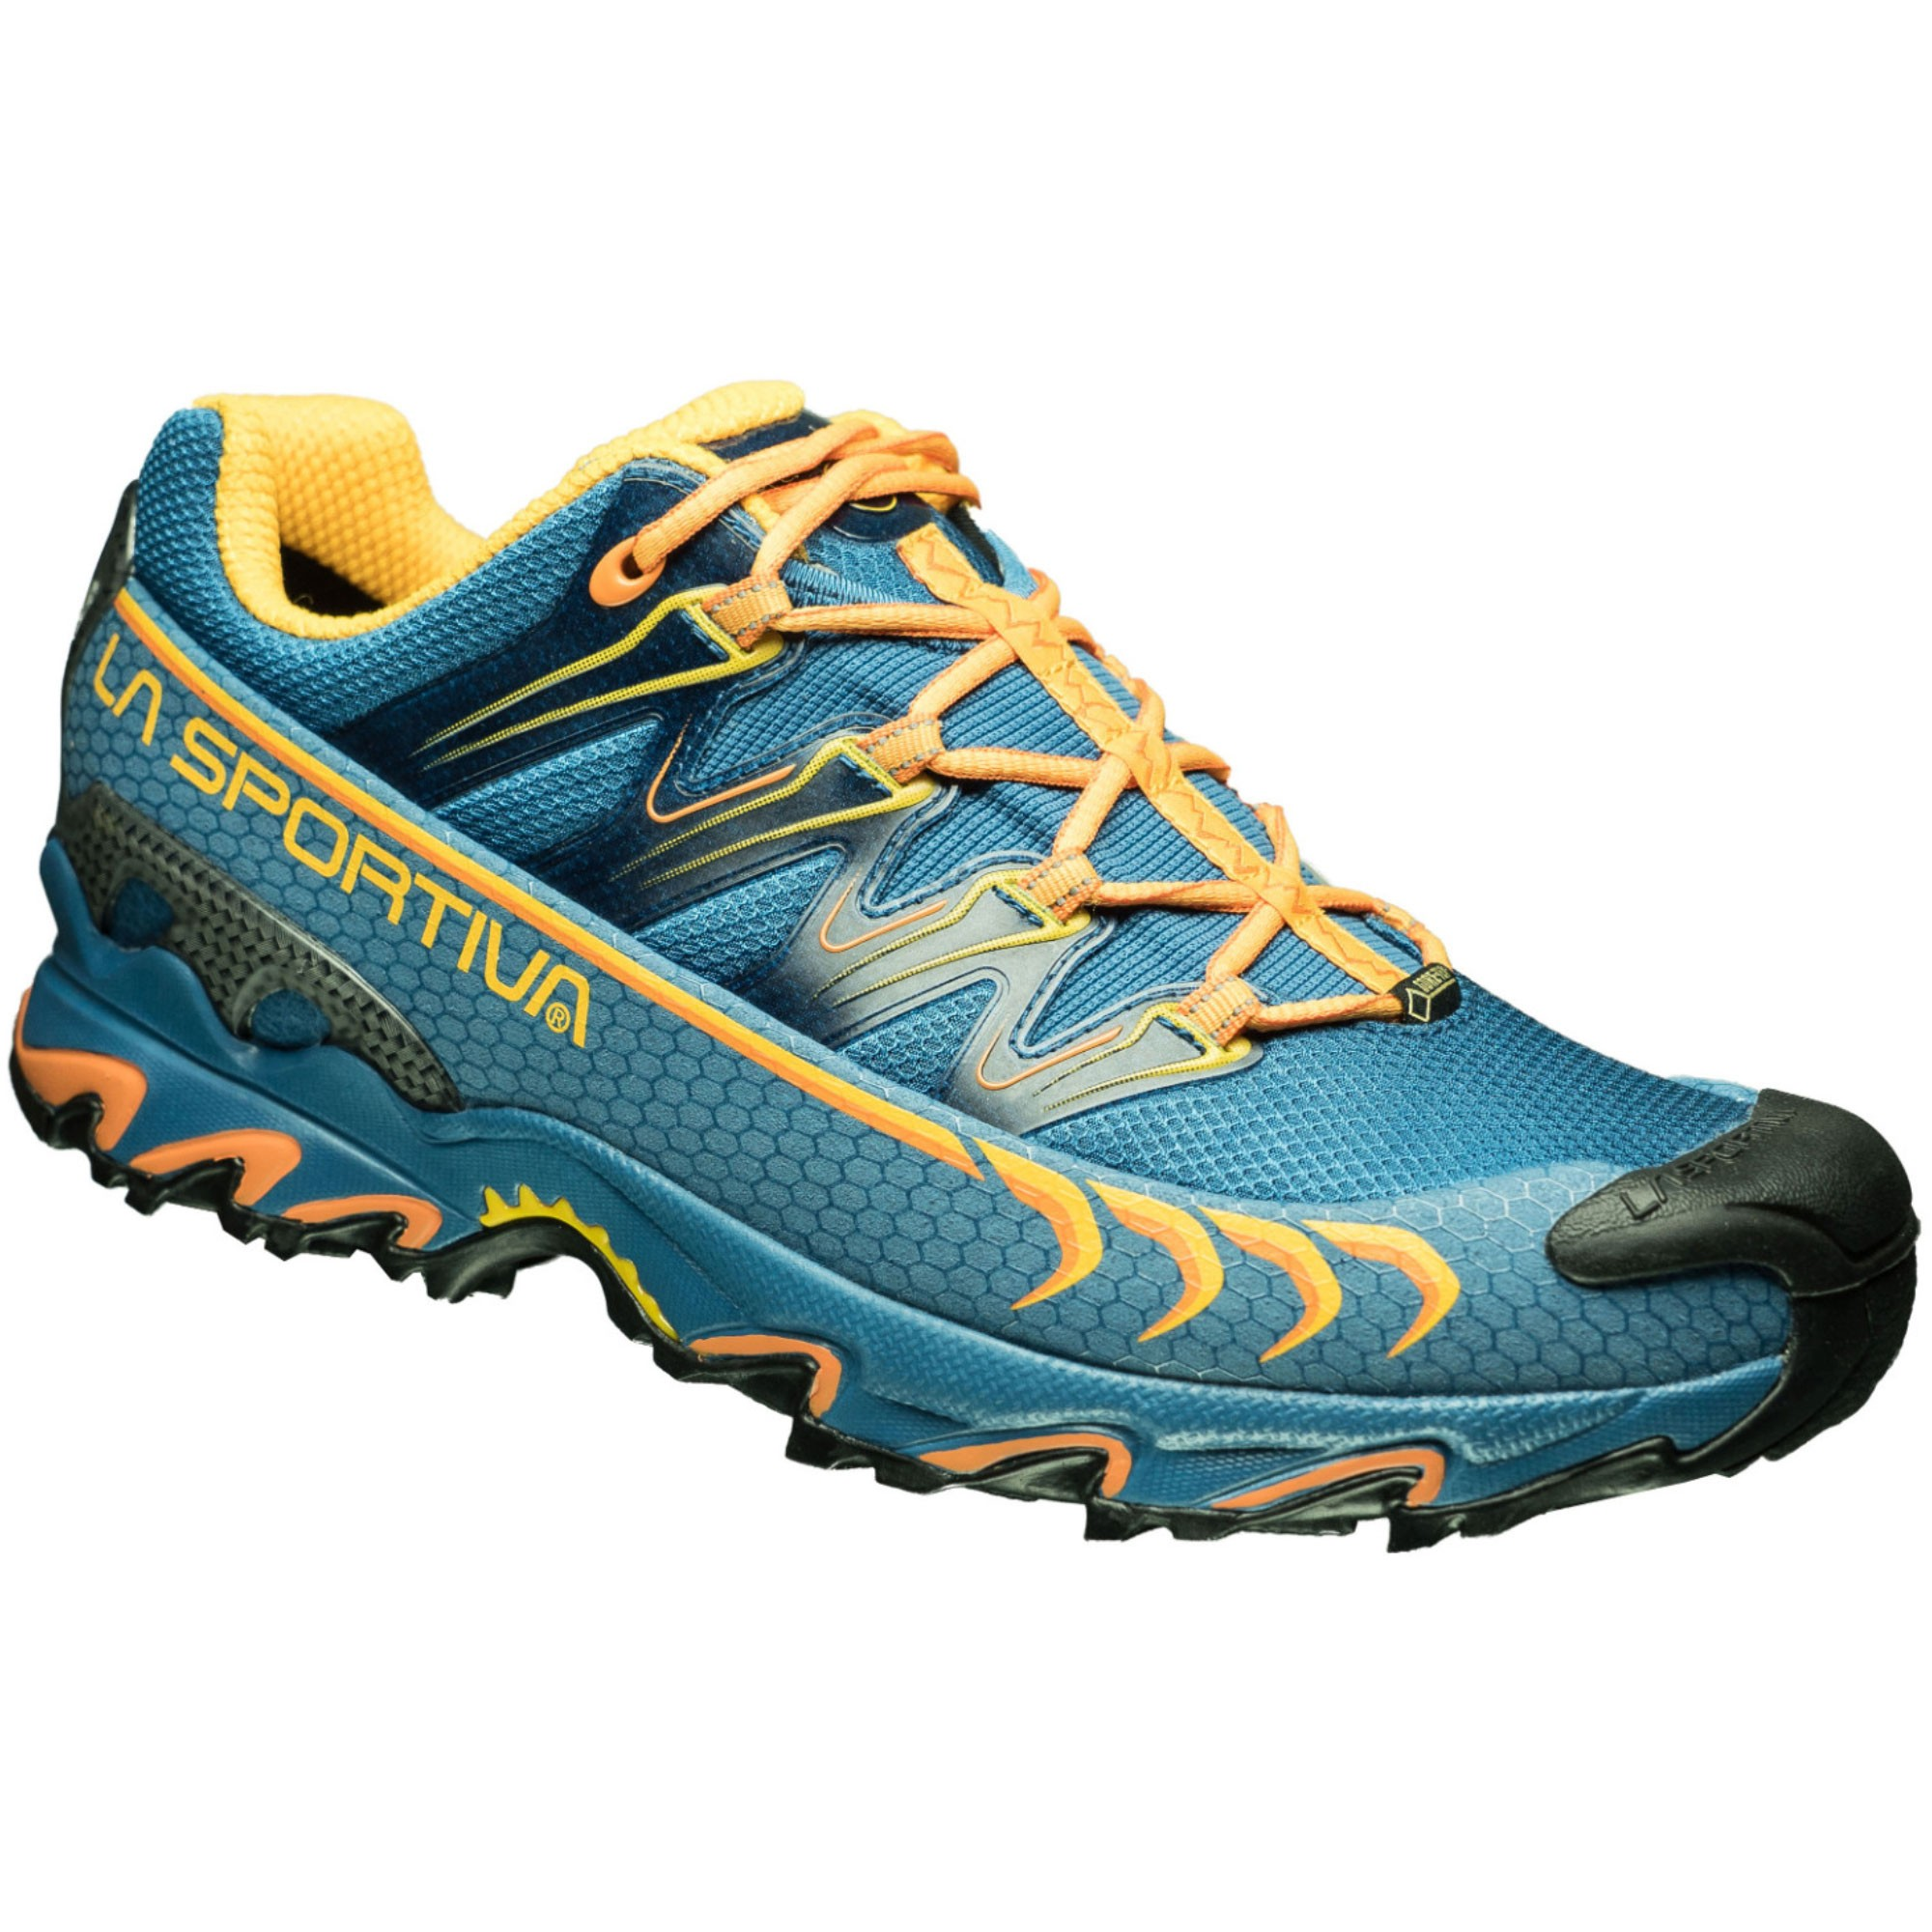 LA SPORTIVA - Ultra Raptor GTX Trail Running Shoes